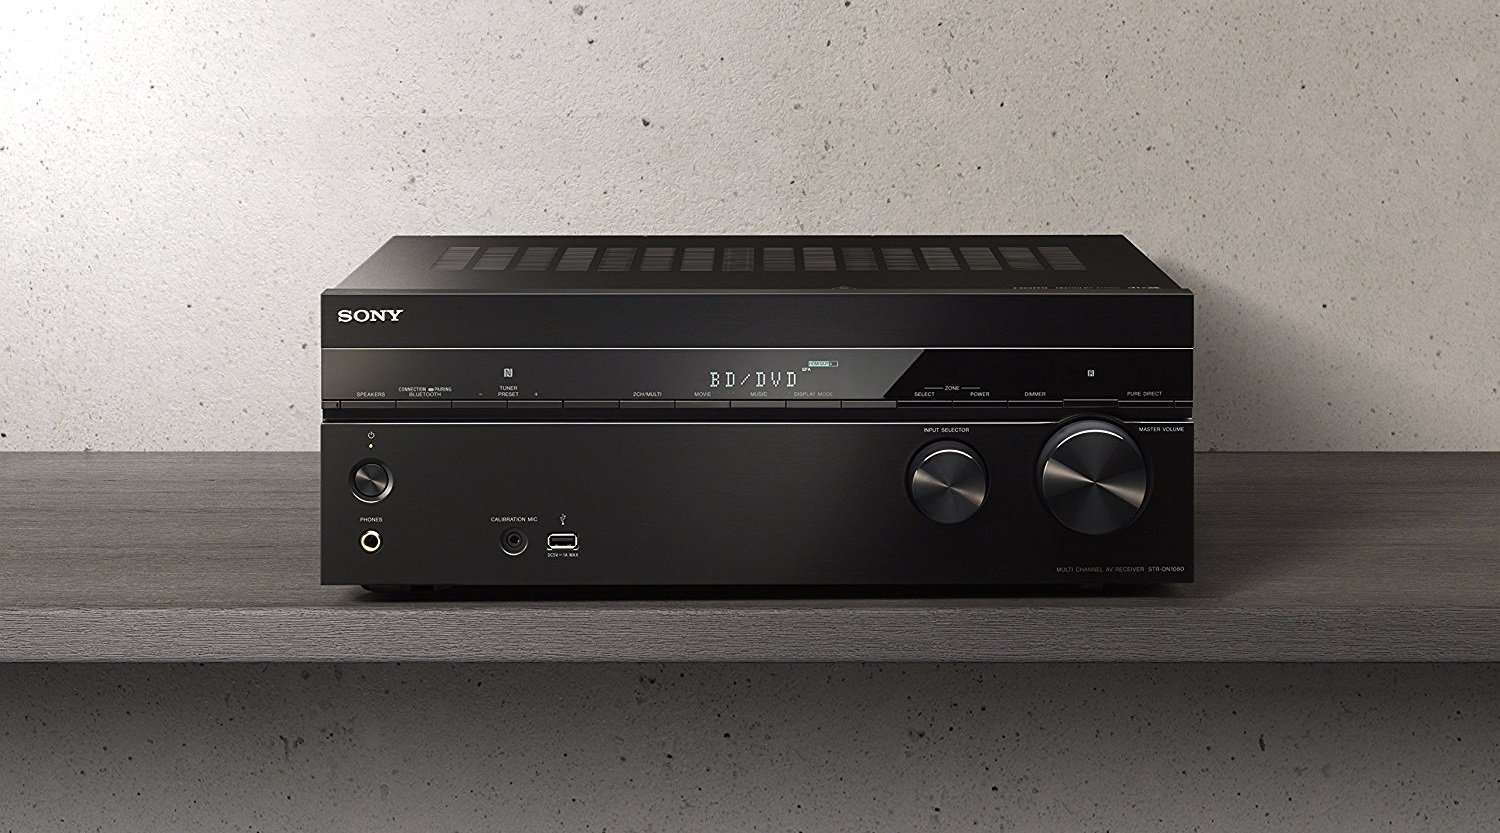 Best Av Receivers The Most Complete Dolby Atmos Dts X And Multiroom Av Receivers You Can Buy Expert Reviews